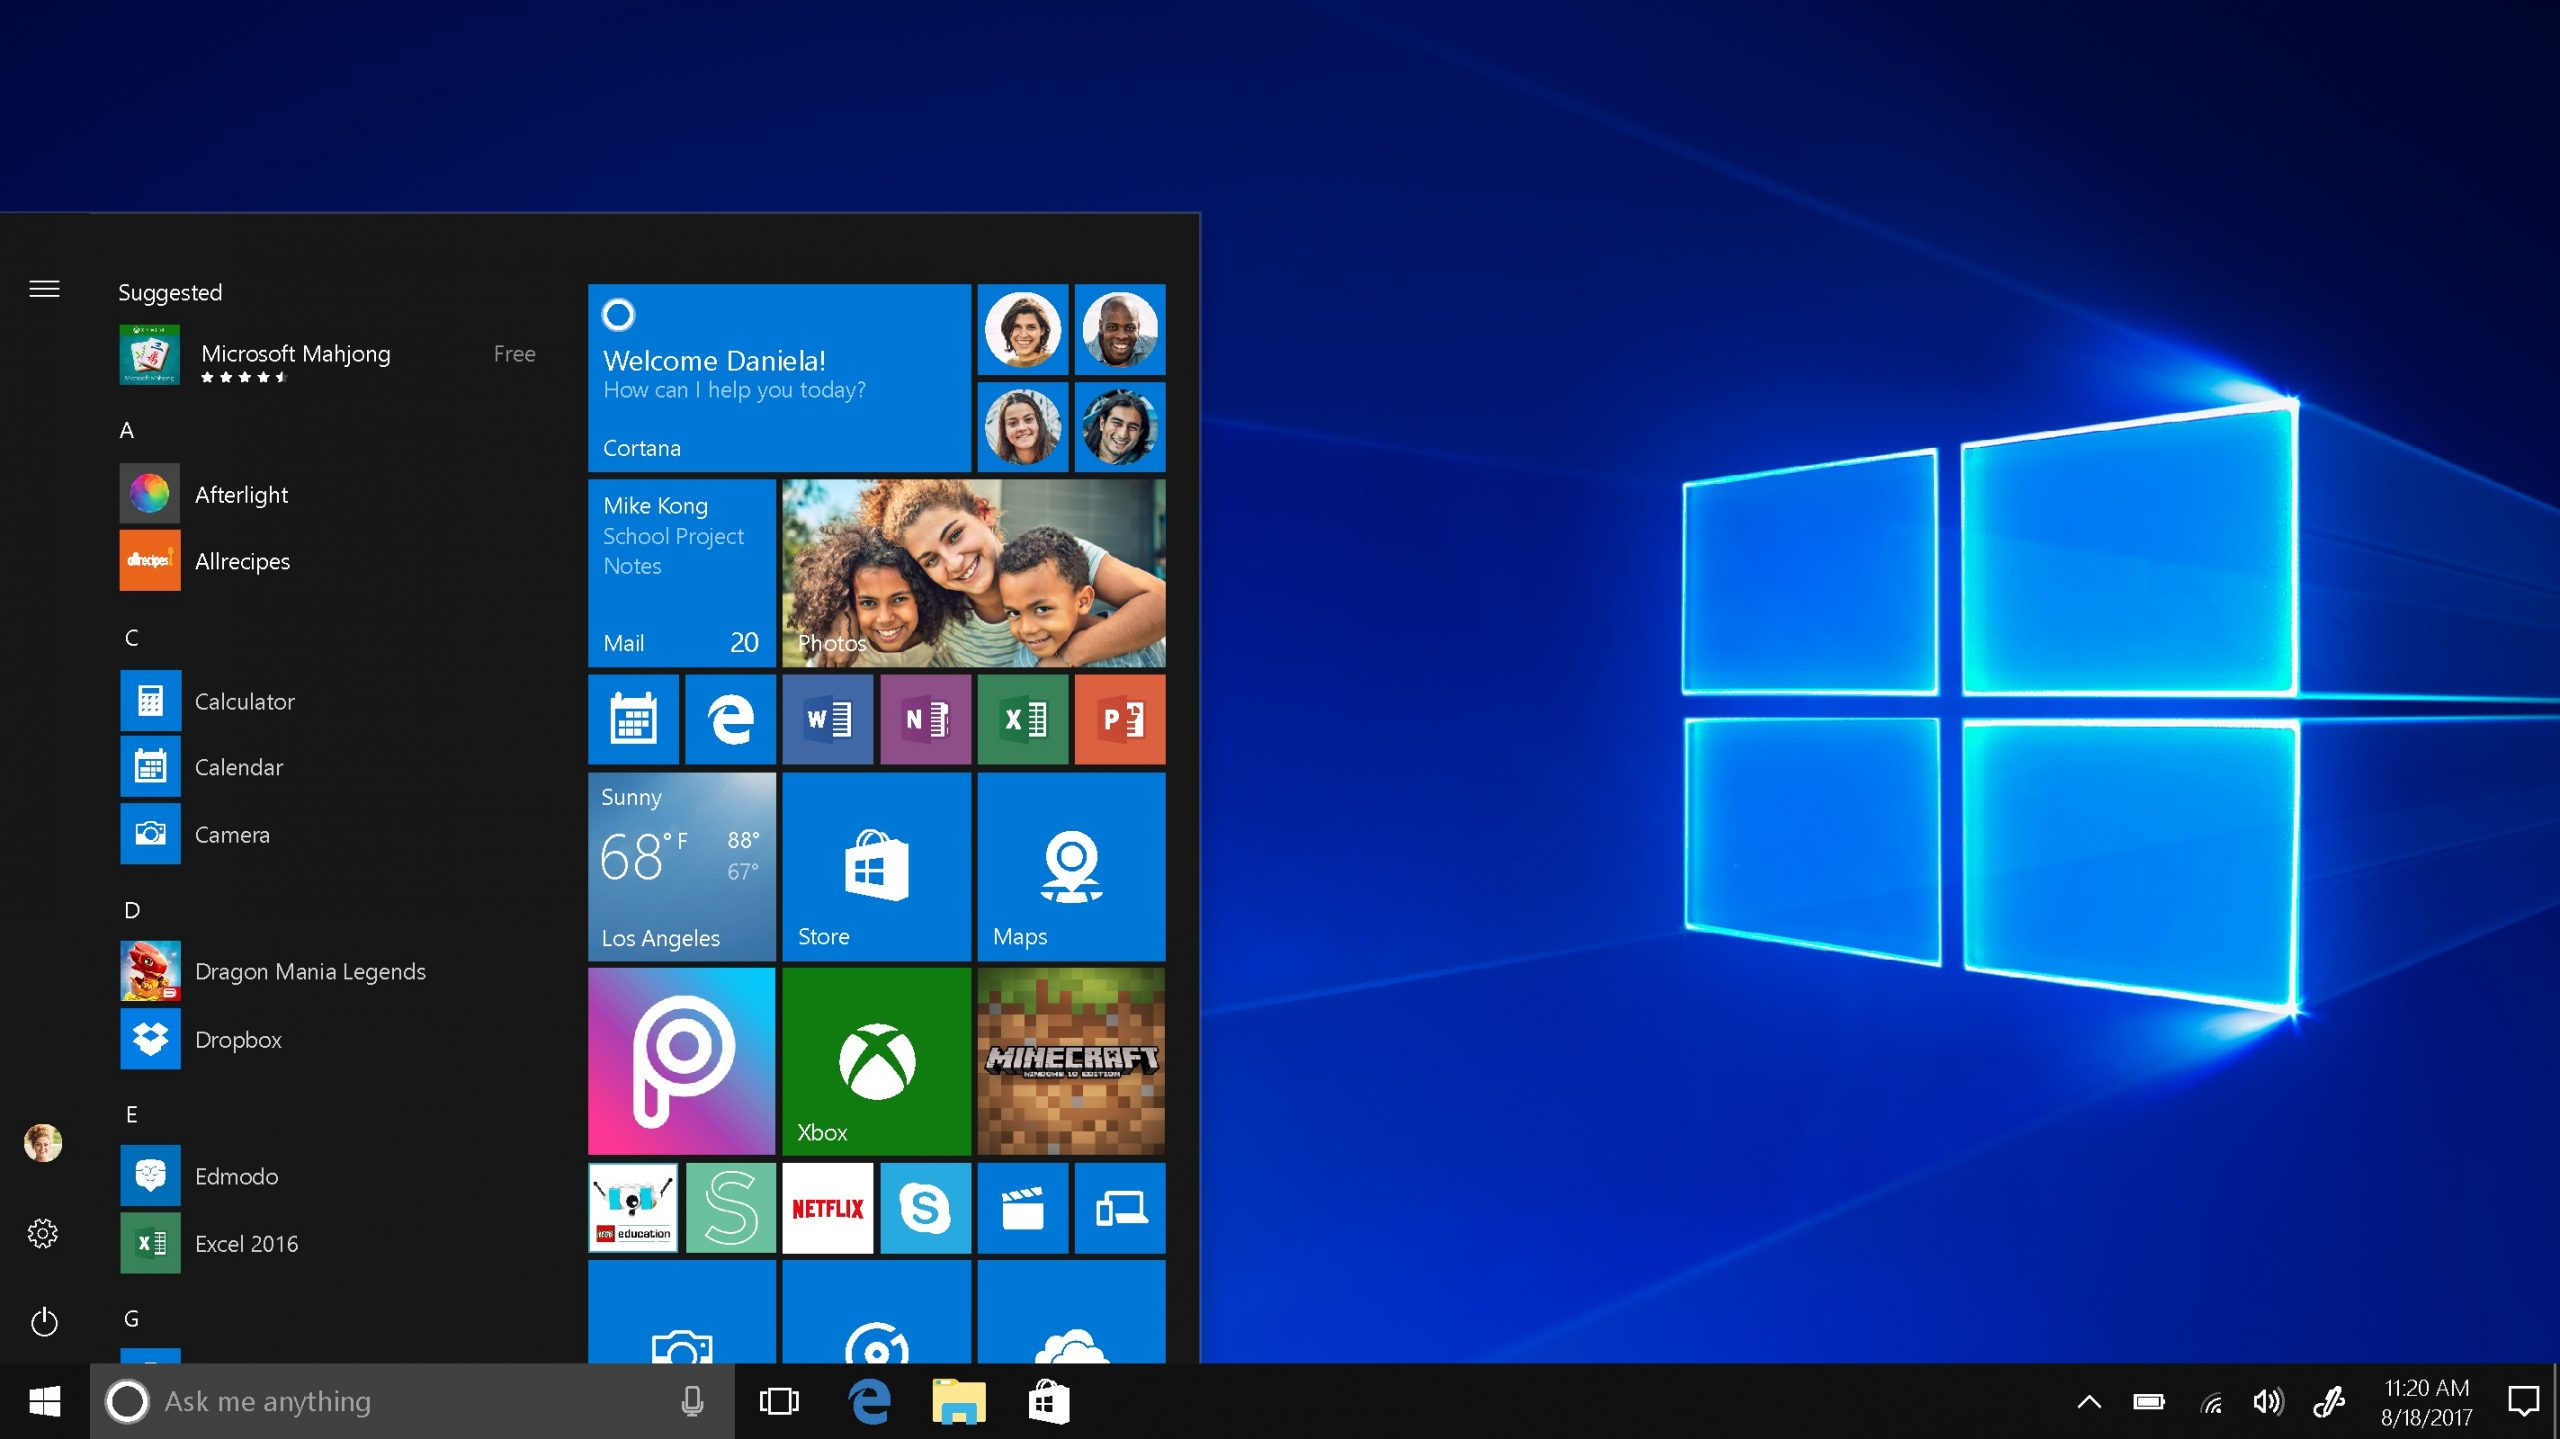 Windows 10 adds 300 million users in one year and reaches 1.3 billion monthly active users